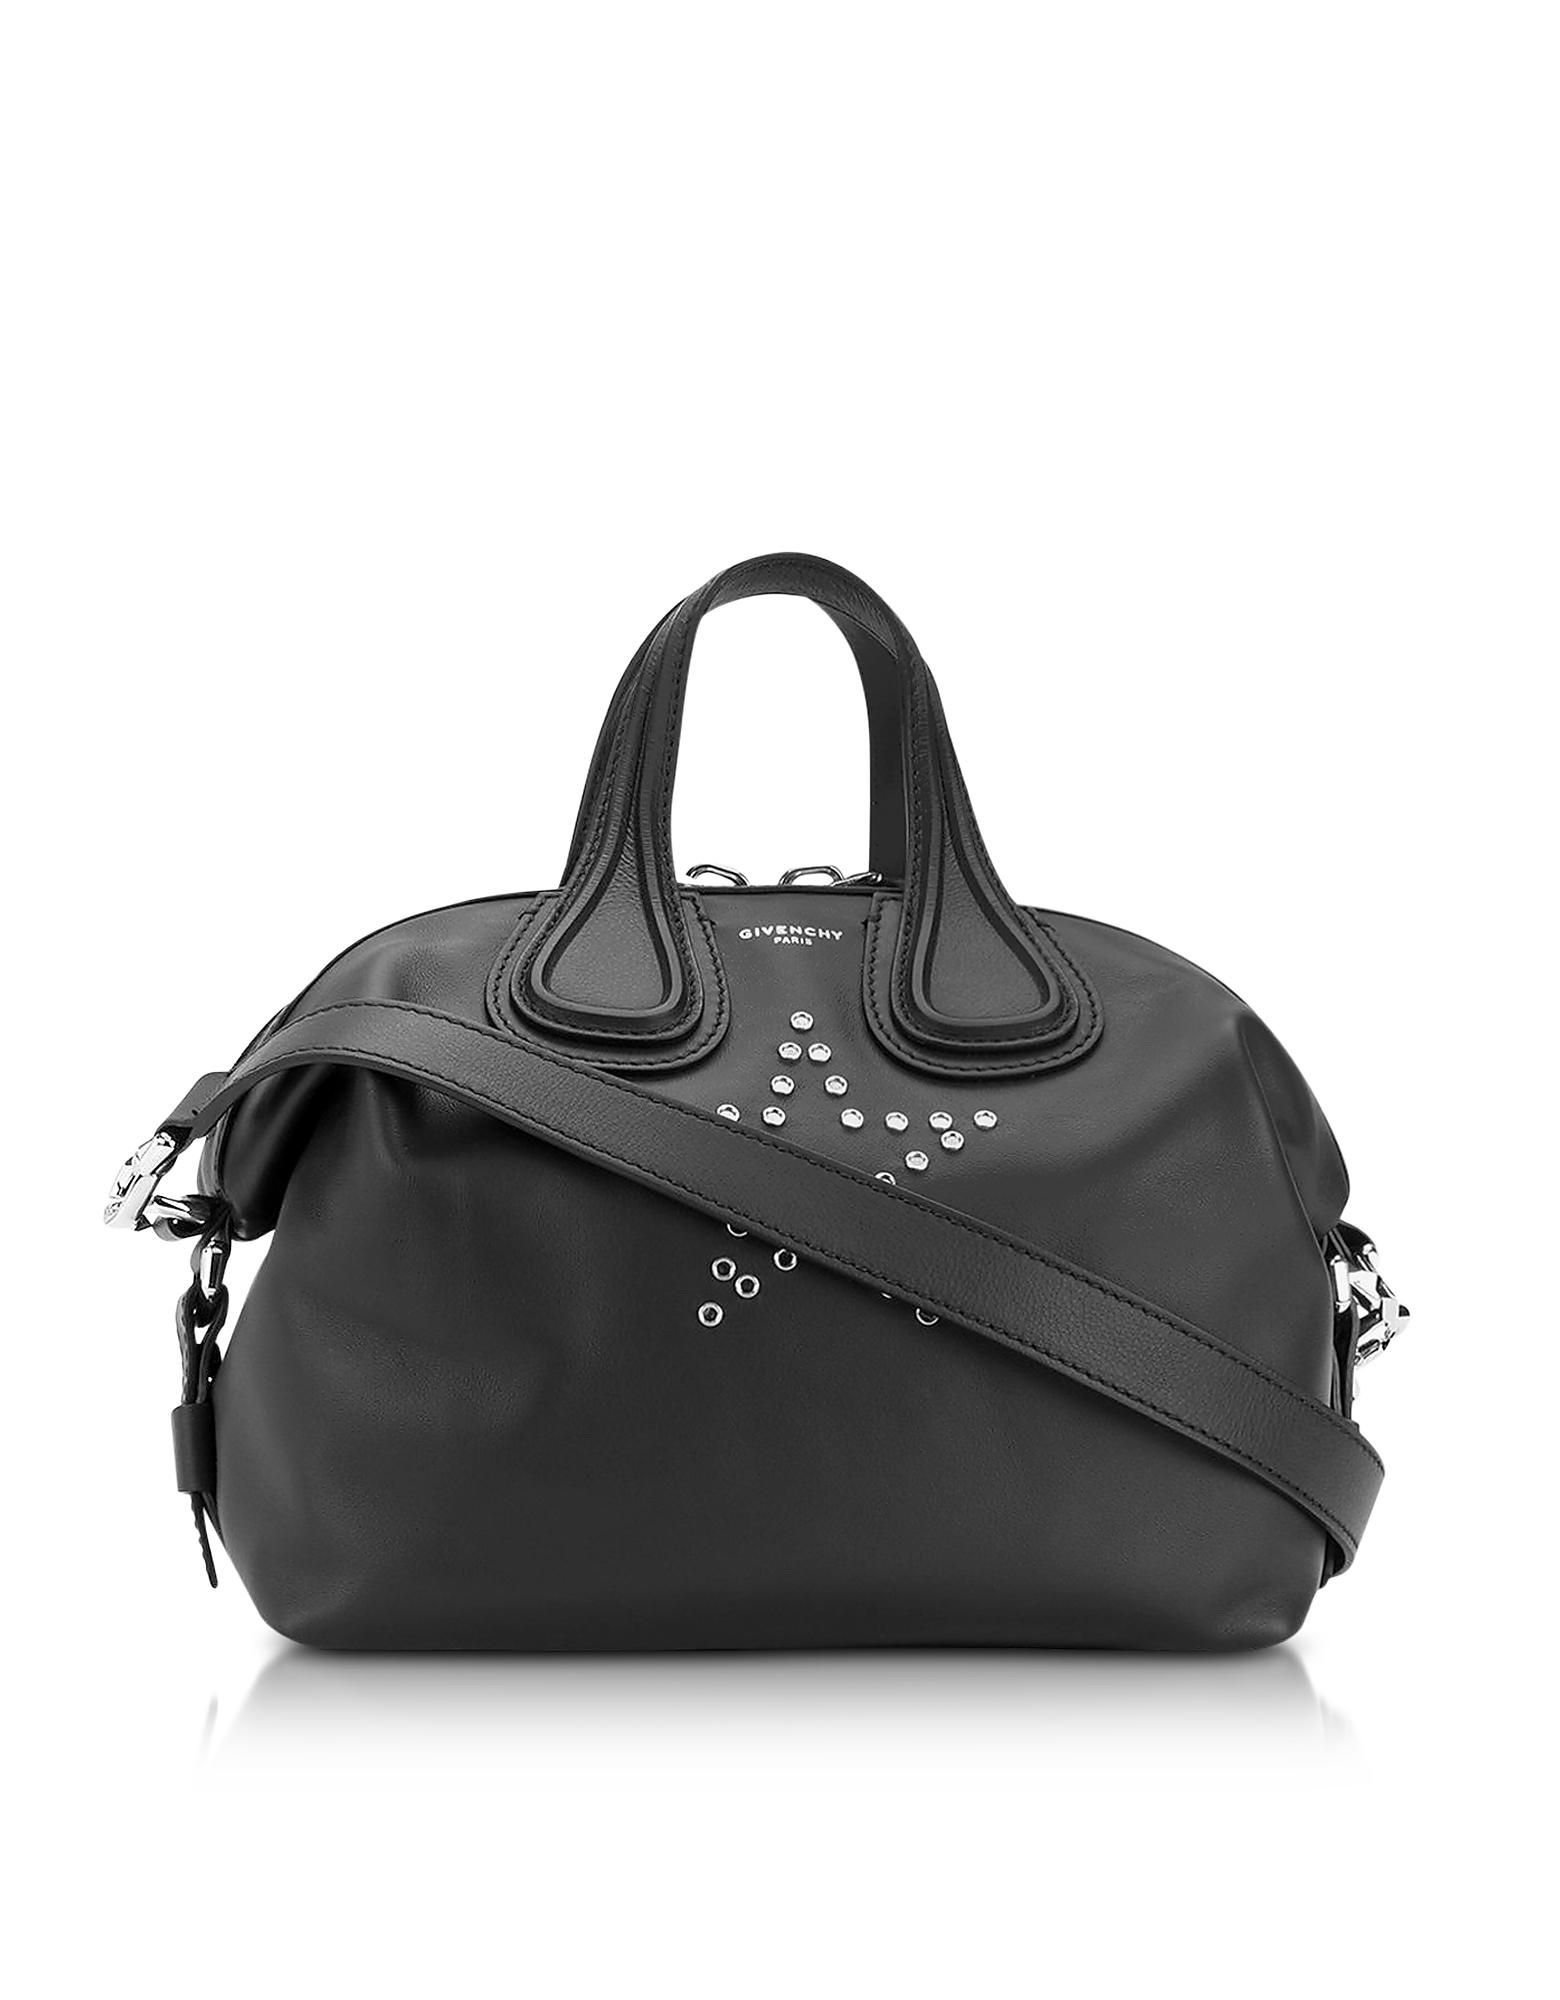 29063296aee1 Lyst - Givenchy Nightgale W stars Black Leather Satchel .